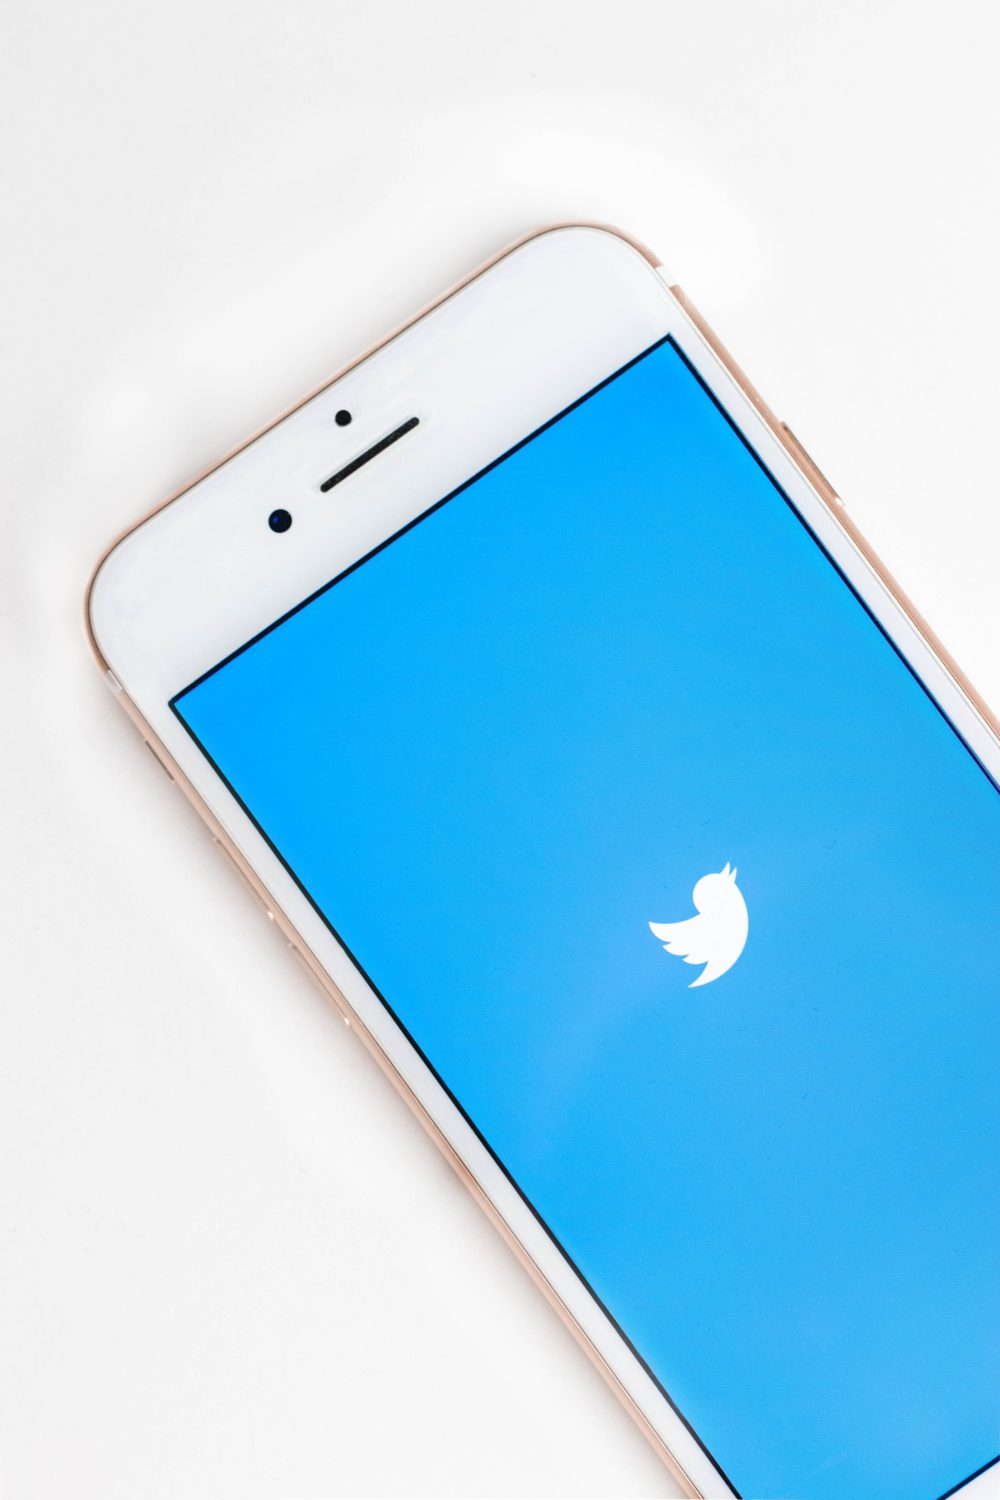 Twitter Rolls Out Conversation Threads on iOS